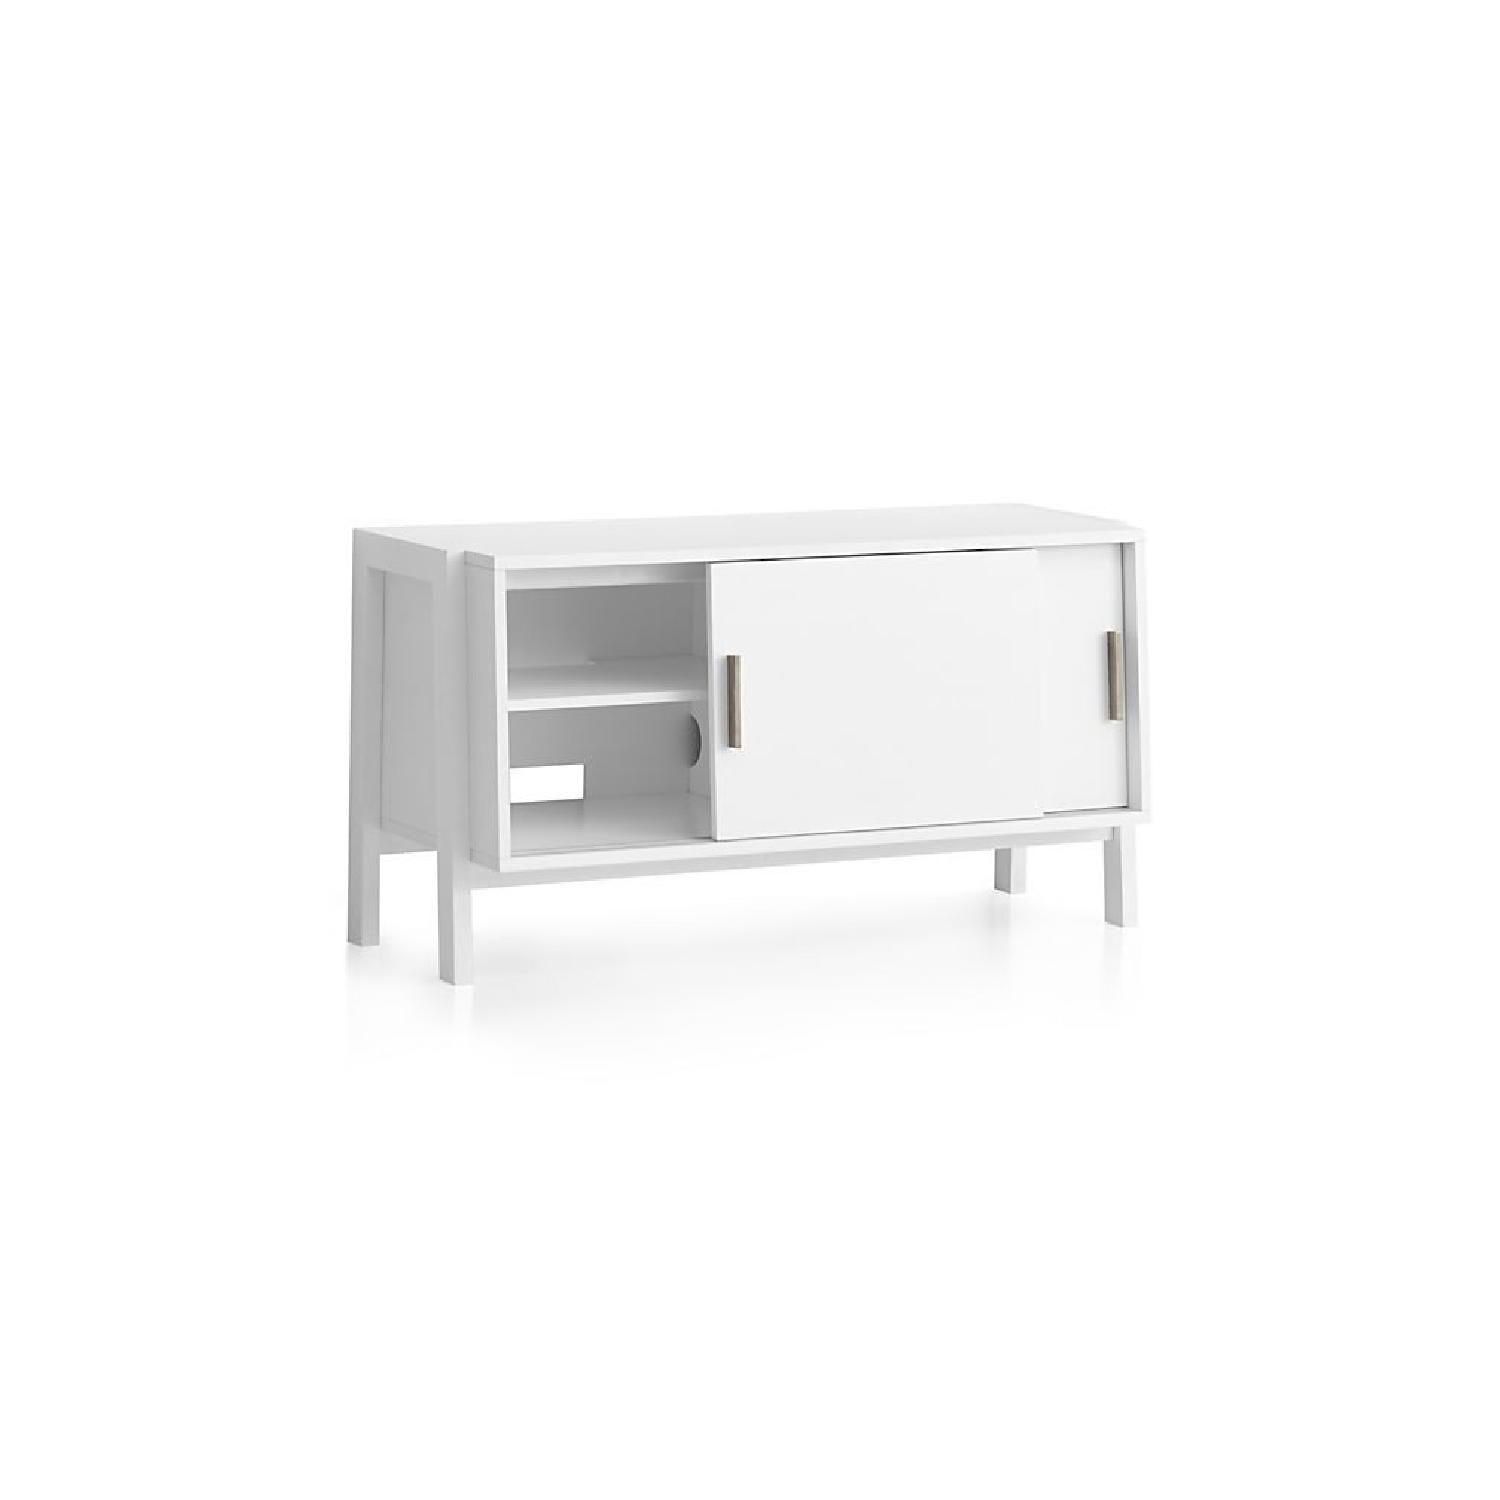 Crate & Barrel Sawyer Low White Media Stand-2